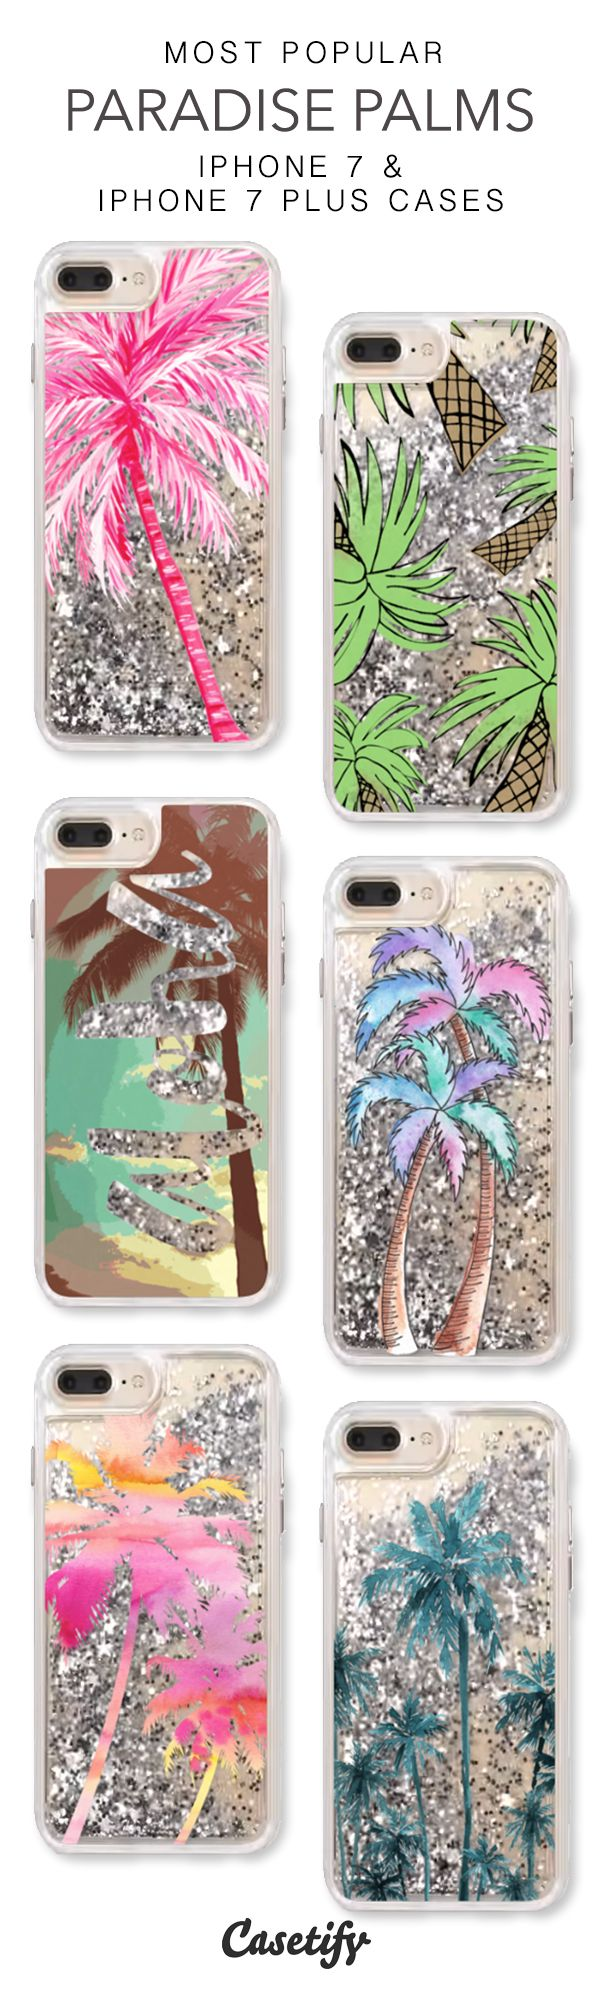 Most Popular Paradise Palms iPhone 7 Cases & iPhone 7 Plus Cases. More protective summer liquid glitter iPhone case here > https://www.casetify.com/en_US/collections/iphone-7-glitter-cases#/?vc=tk9Ukhscmc